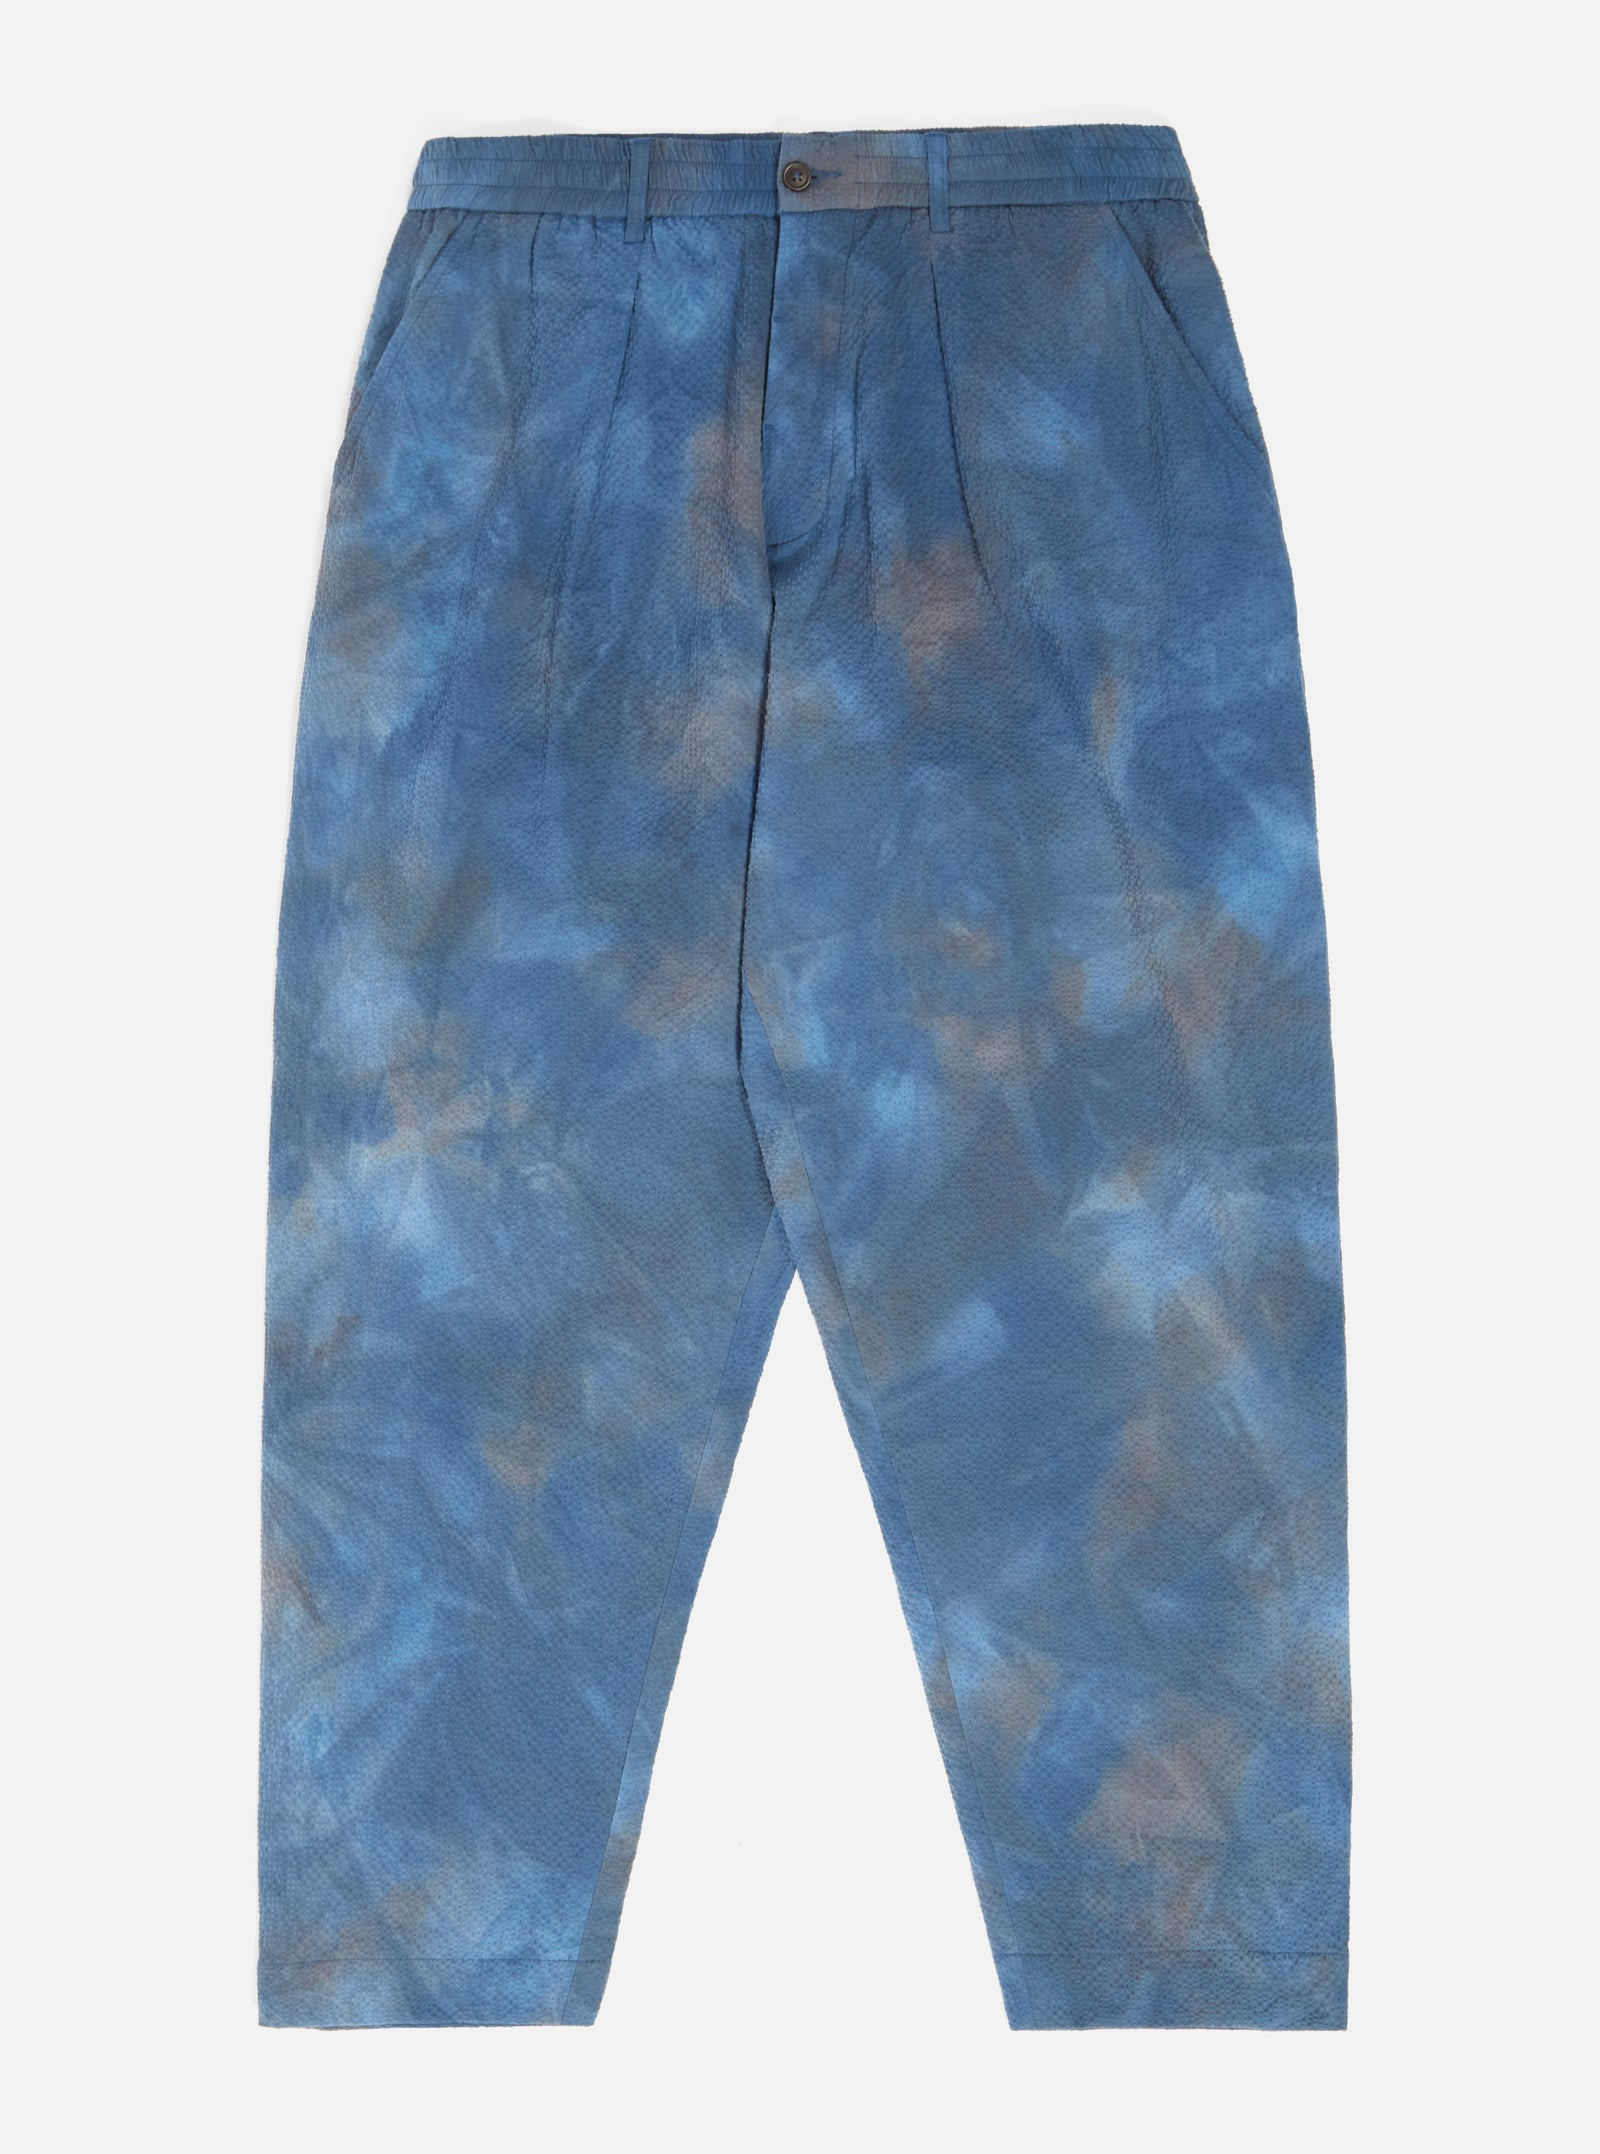 Universal Works Pleated Track Pant in Blue Space Dye Suiting